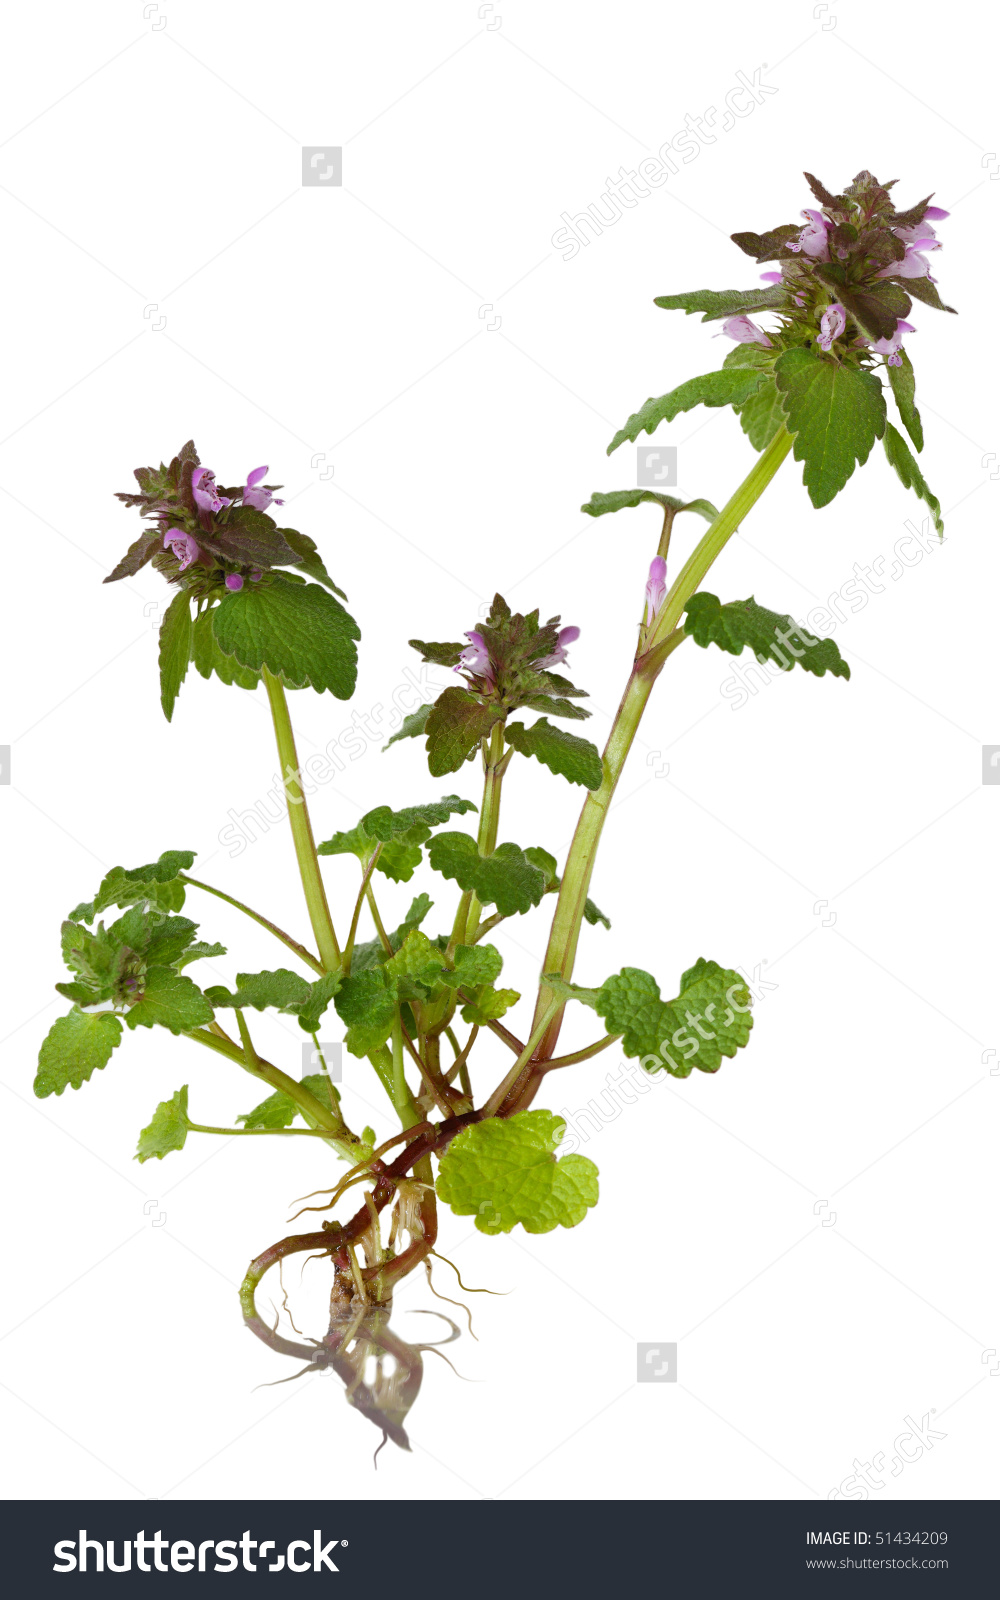 Stems wide dead nettle clipart #5